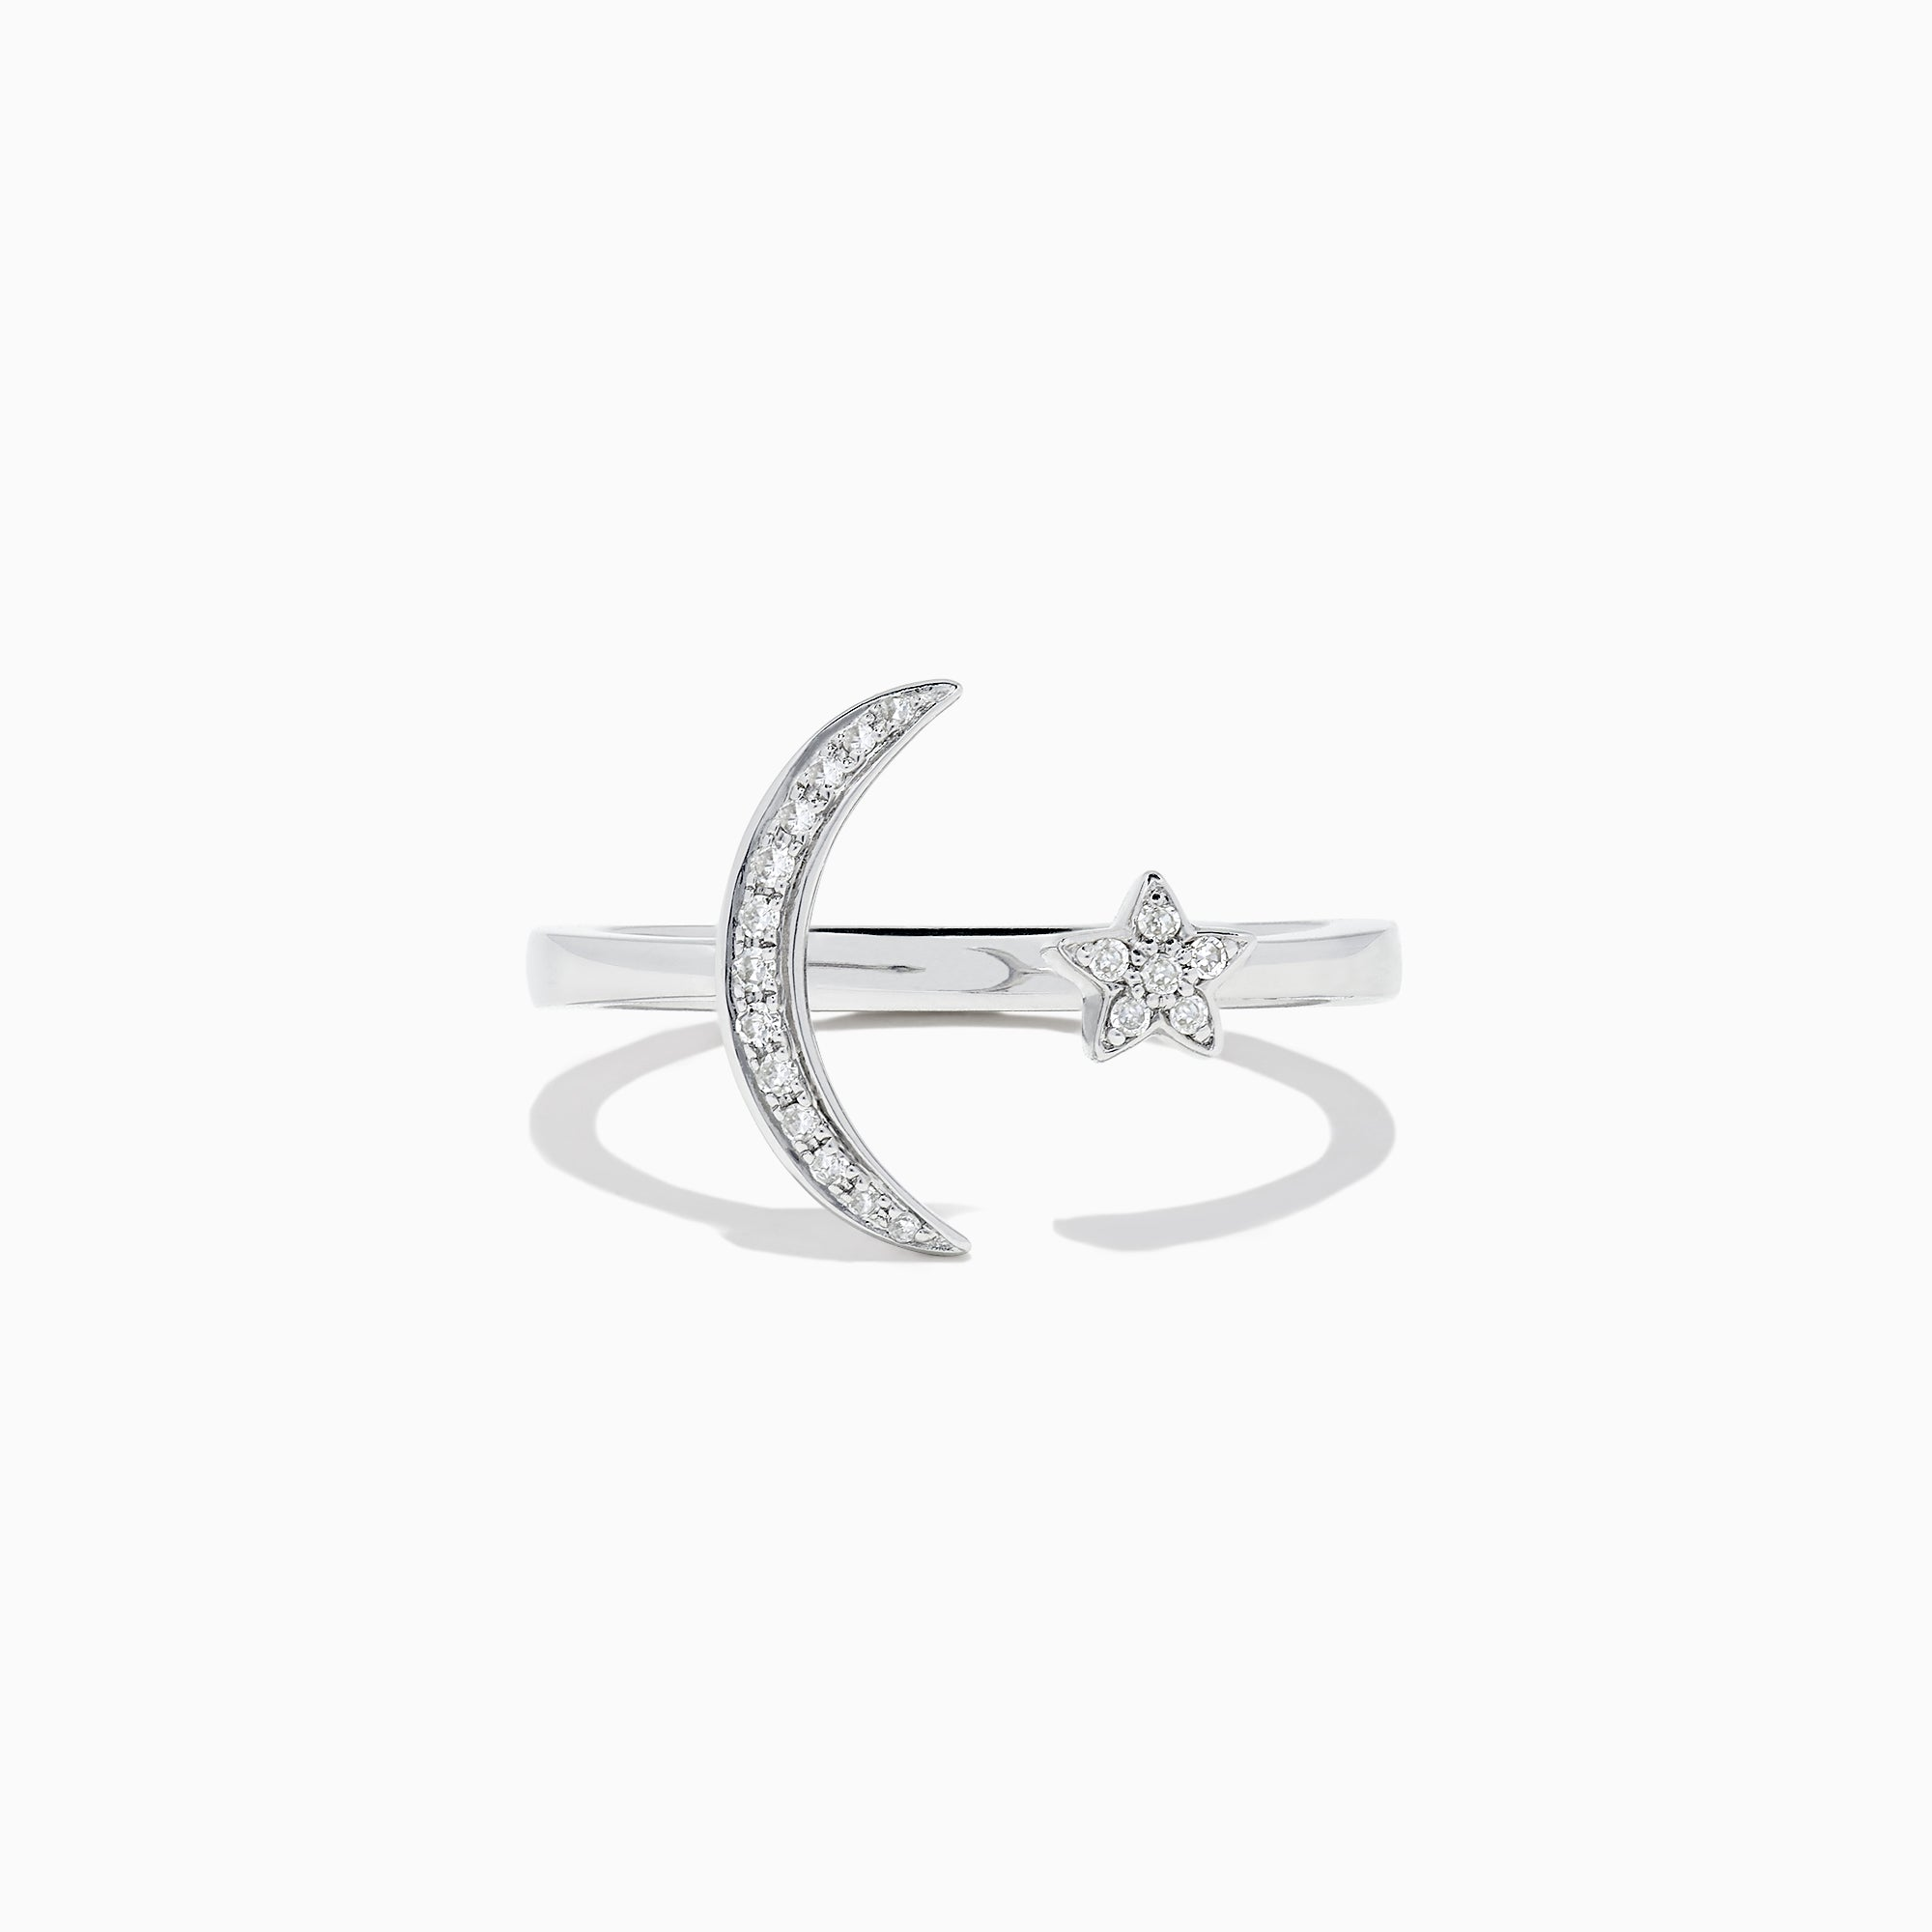 Effy Novelty 14K White Gold Moon and Star Diamond Ring, 0.08 TCW